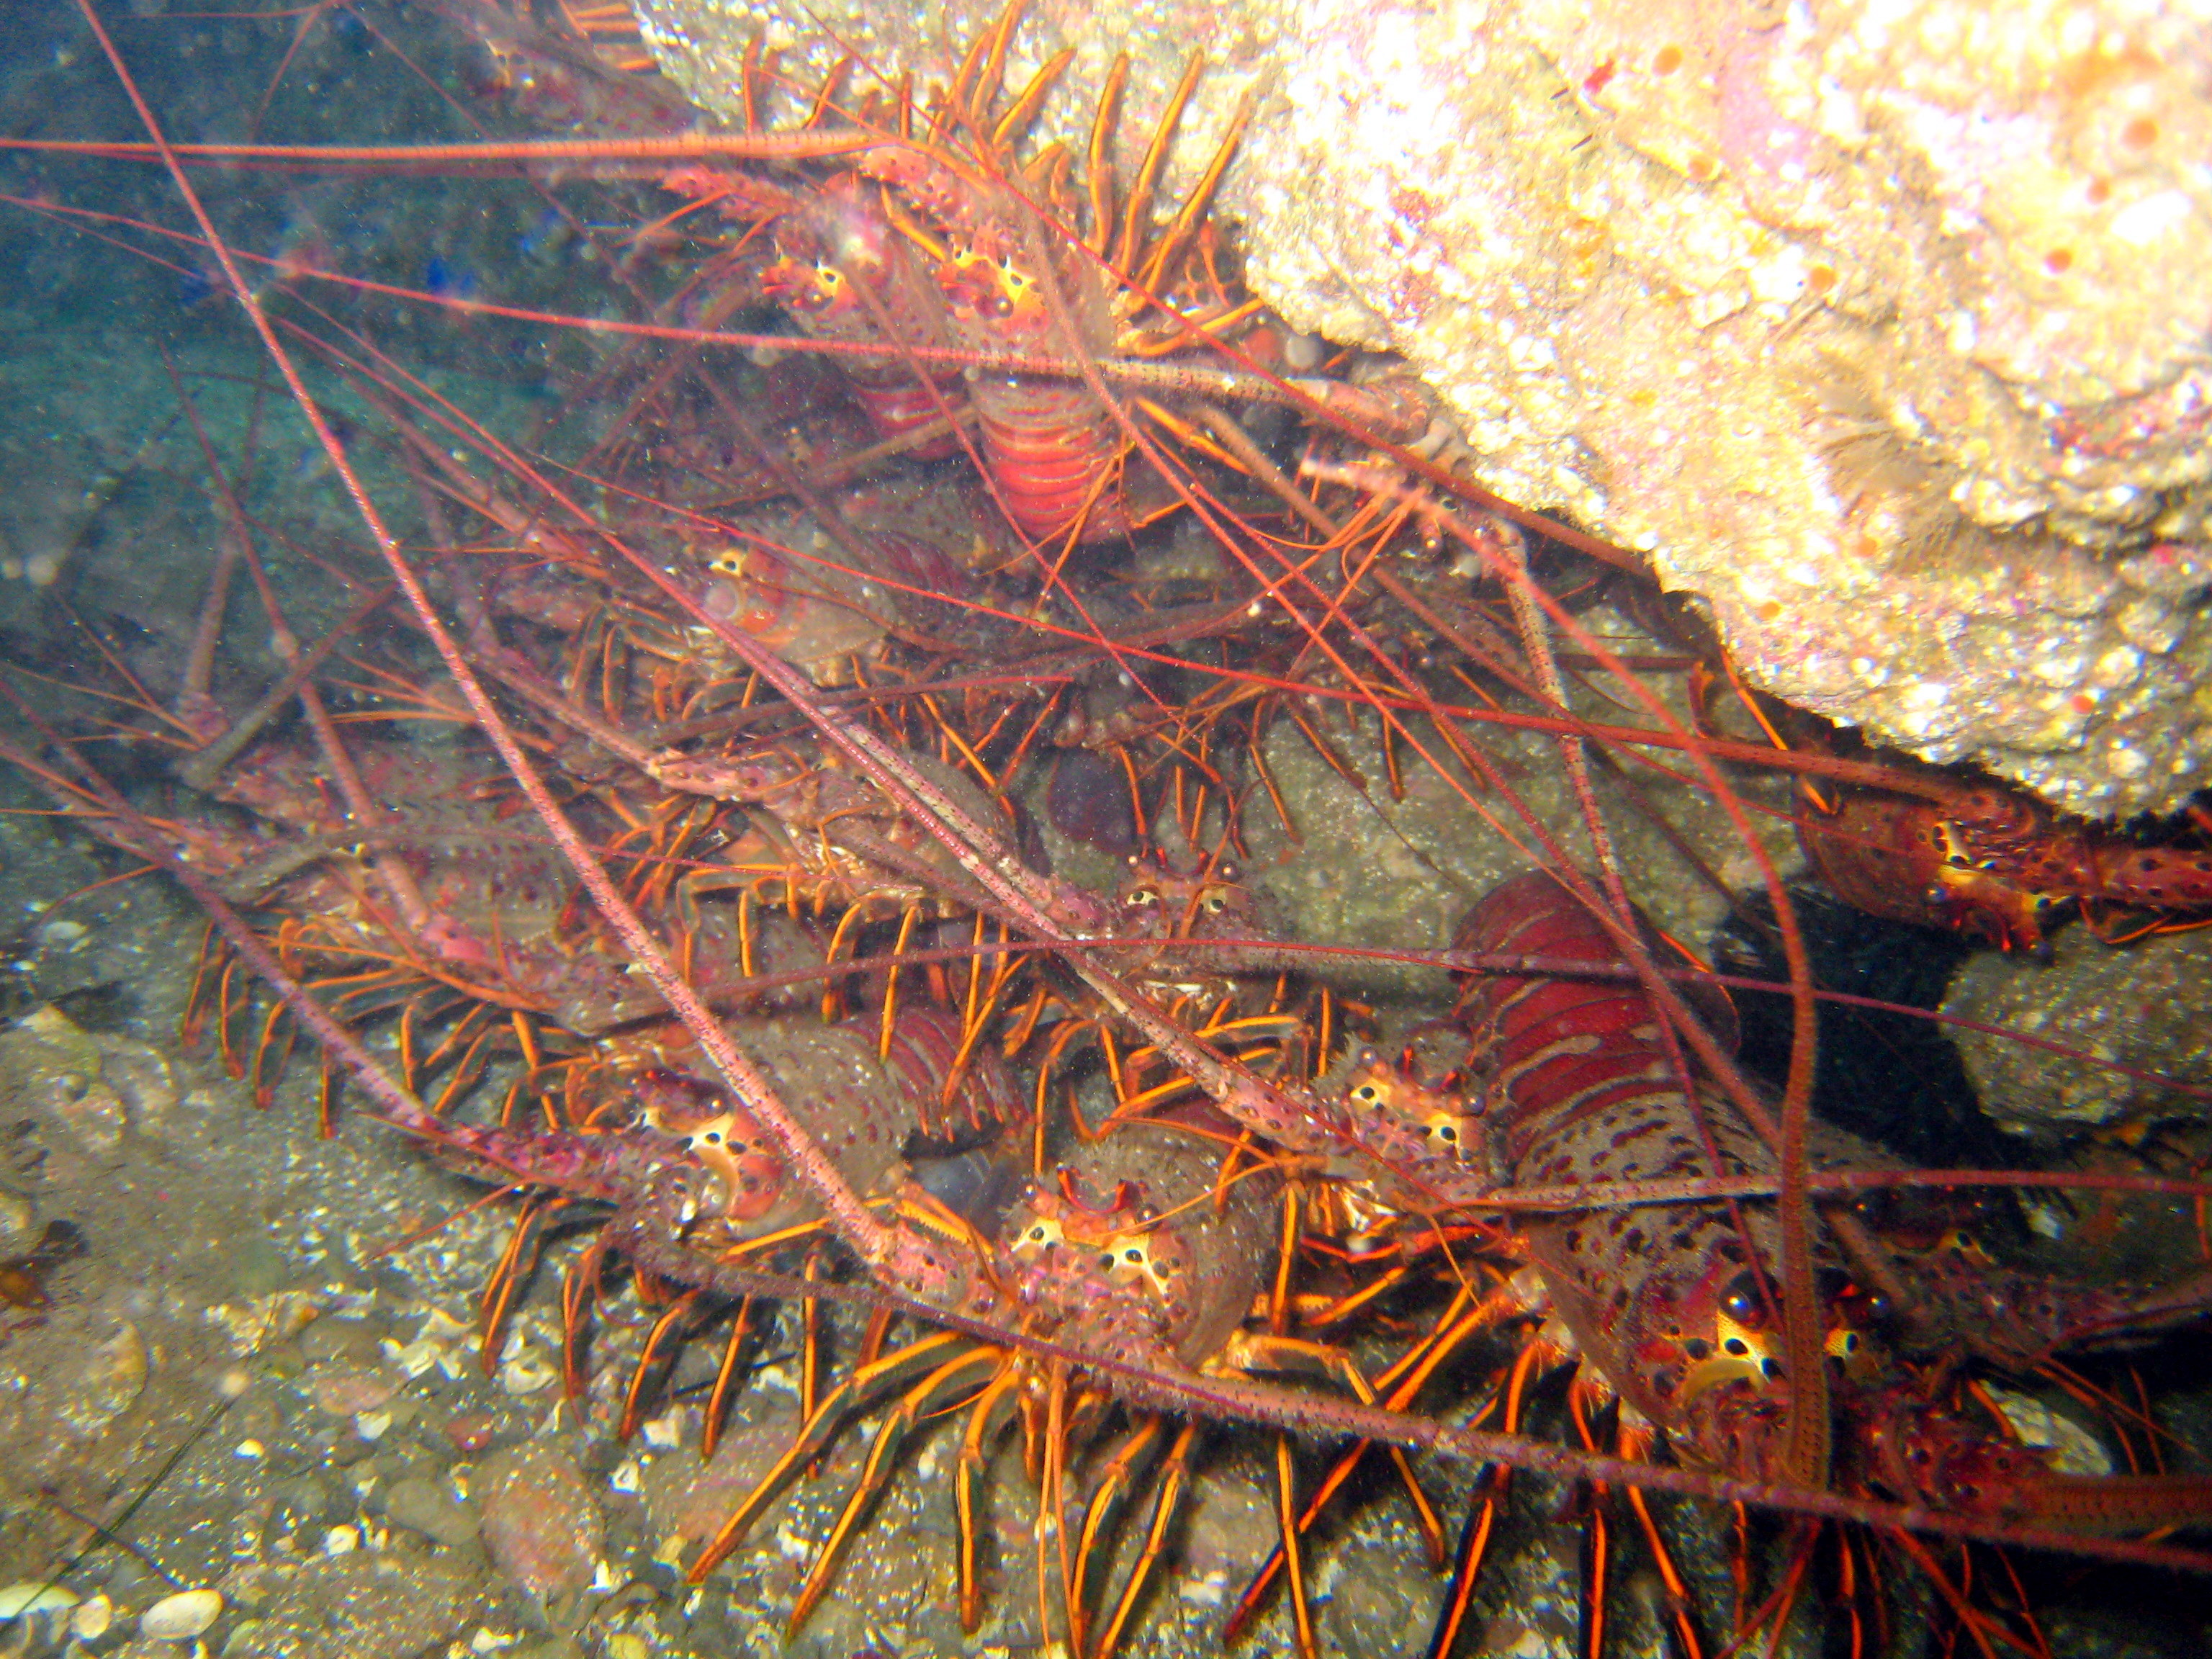 many spiny lobsters under a crevice